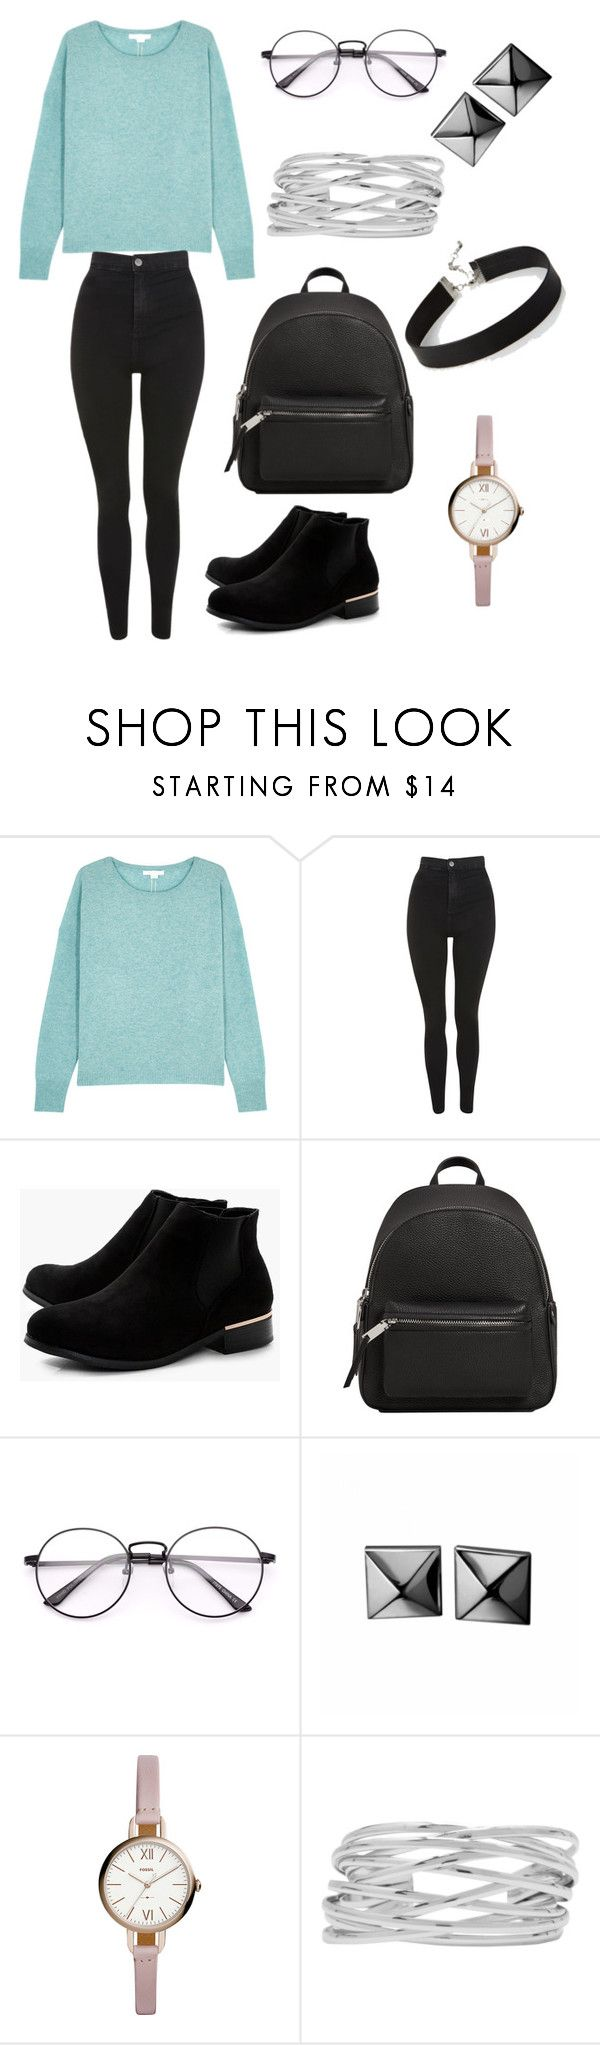 """""""Untitled #16"""" by andreea24z ❤ liked on Polyvore featuring Duffy, Topshop, Boohoo, MANGO, Waterford, FOSSIL, M&Co, Express and chicflats"""